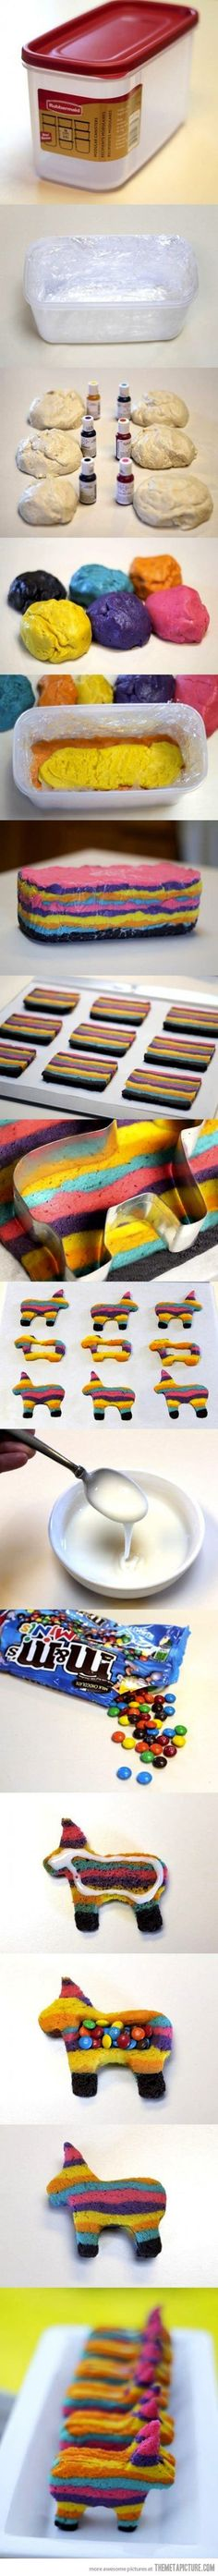 #pinata cookies recipe how to